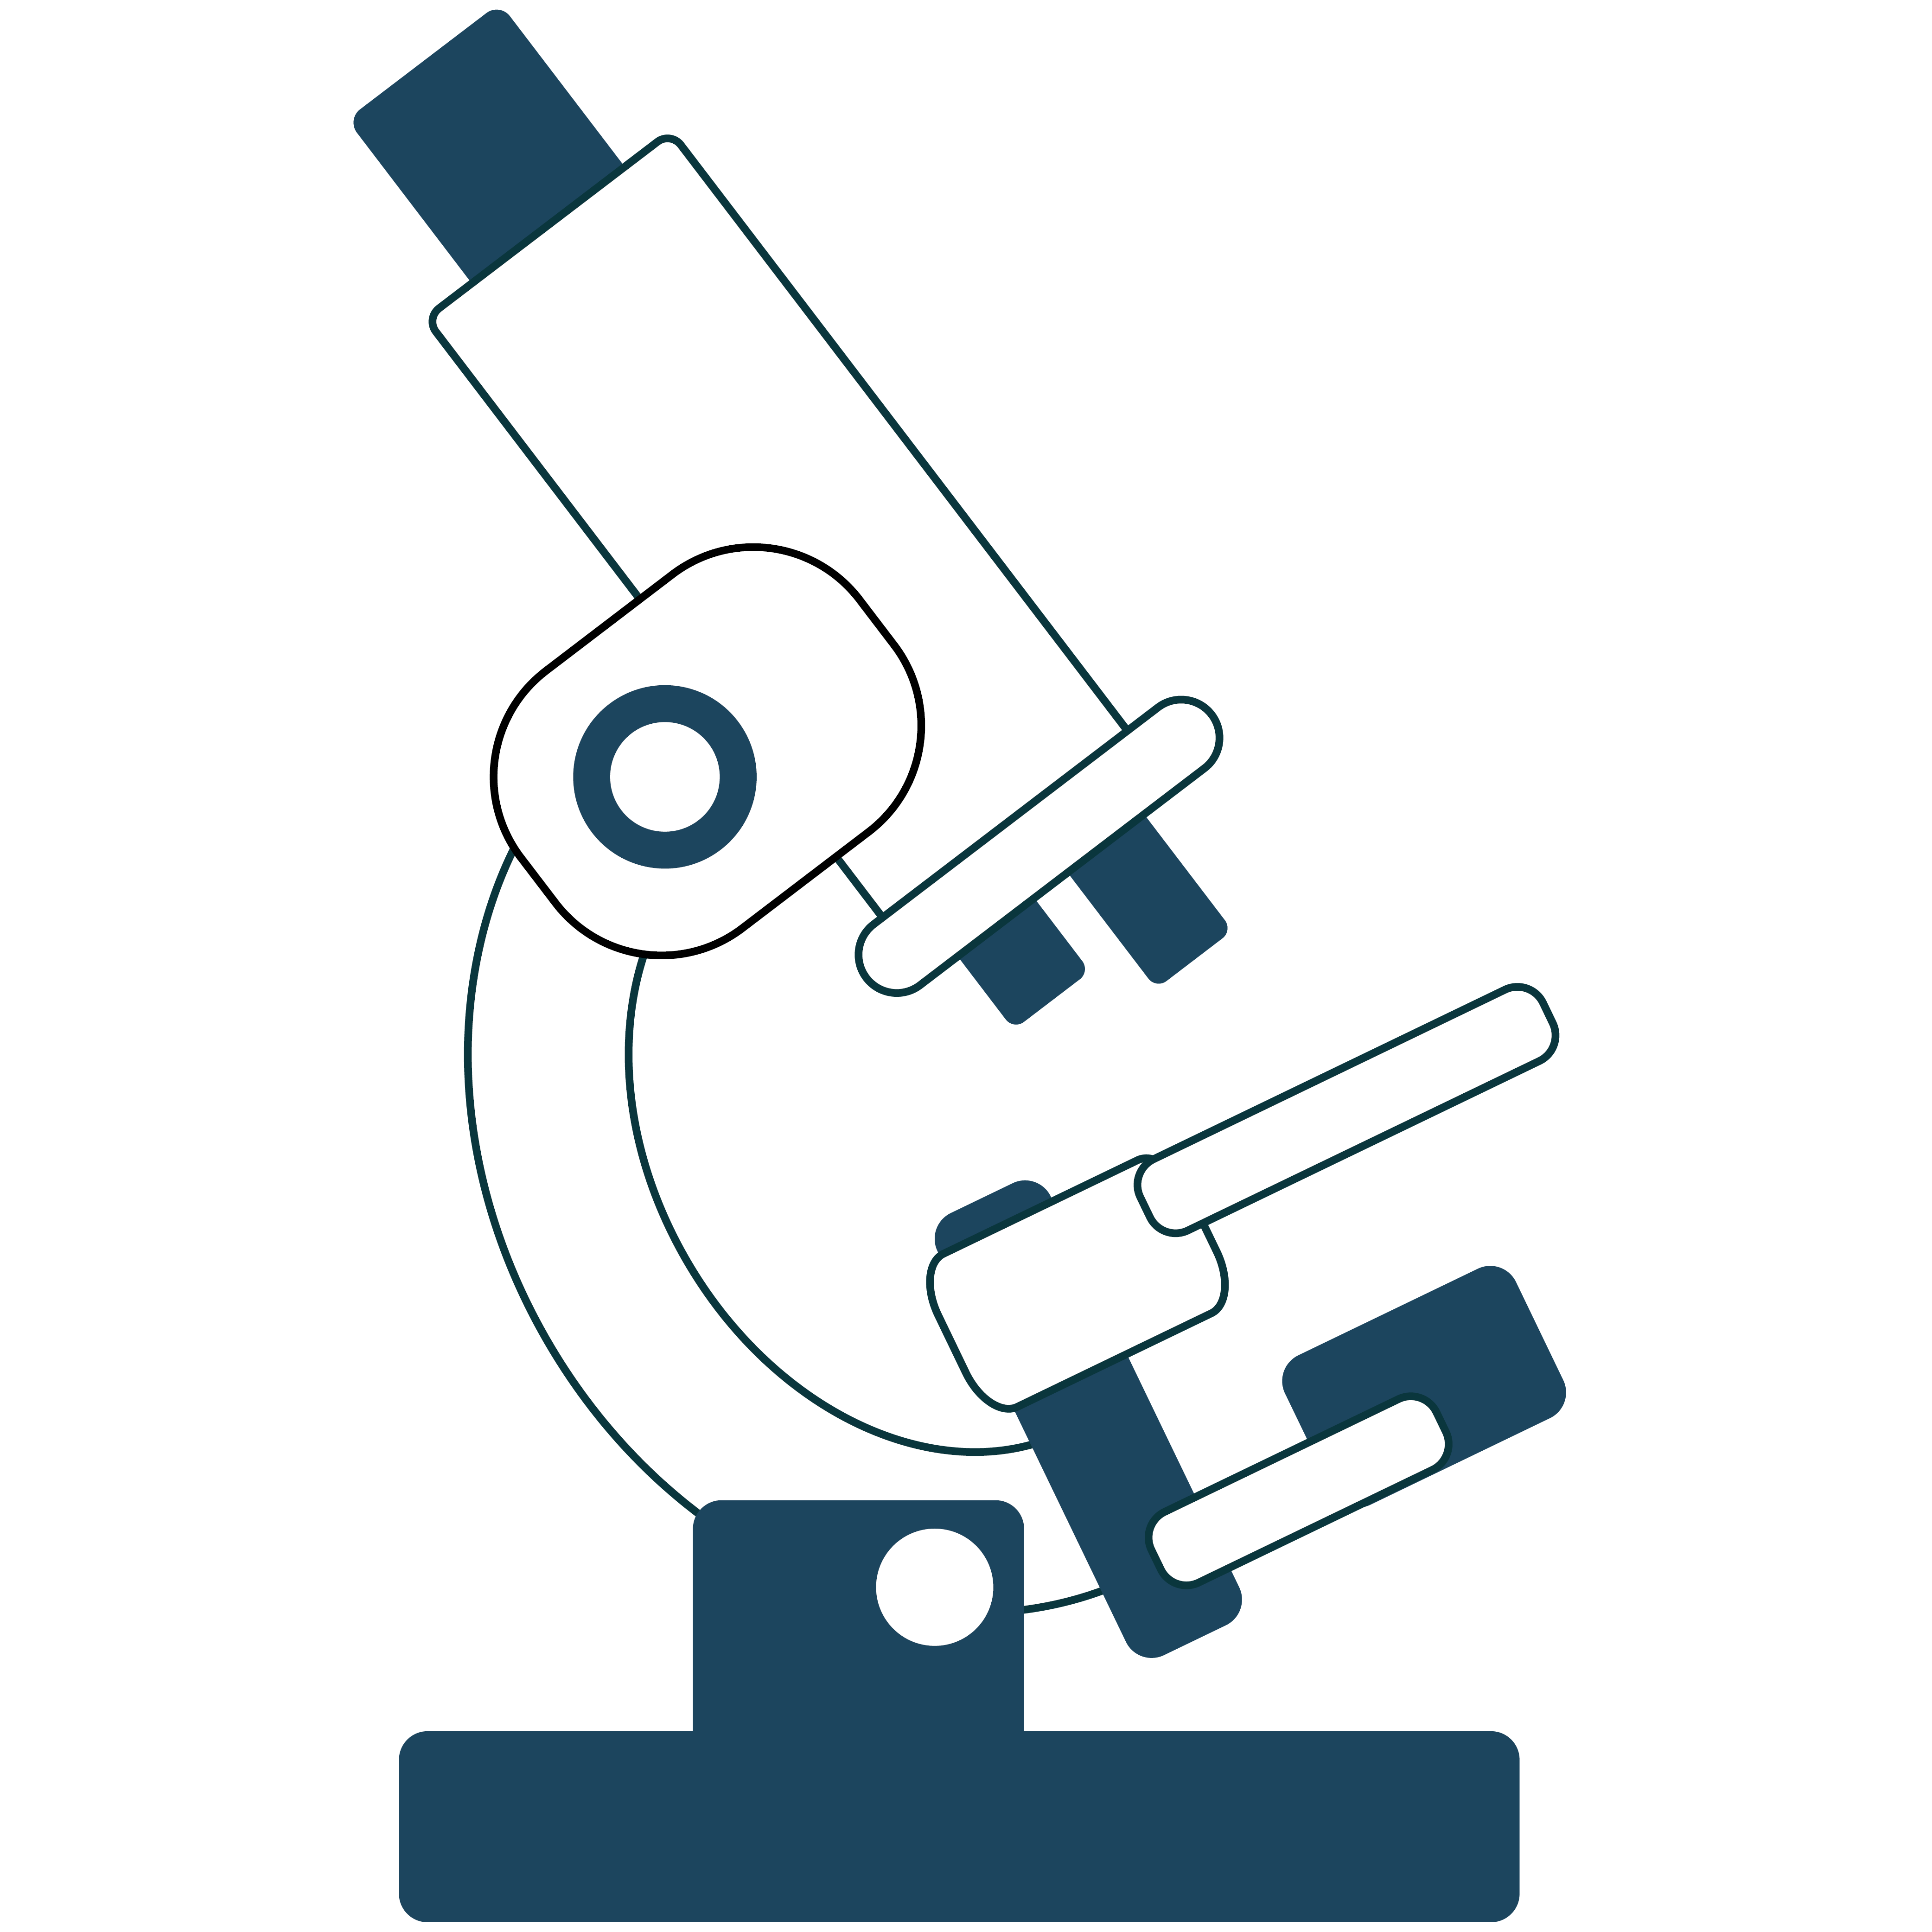 Data clipart data process. Research findings resulting from